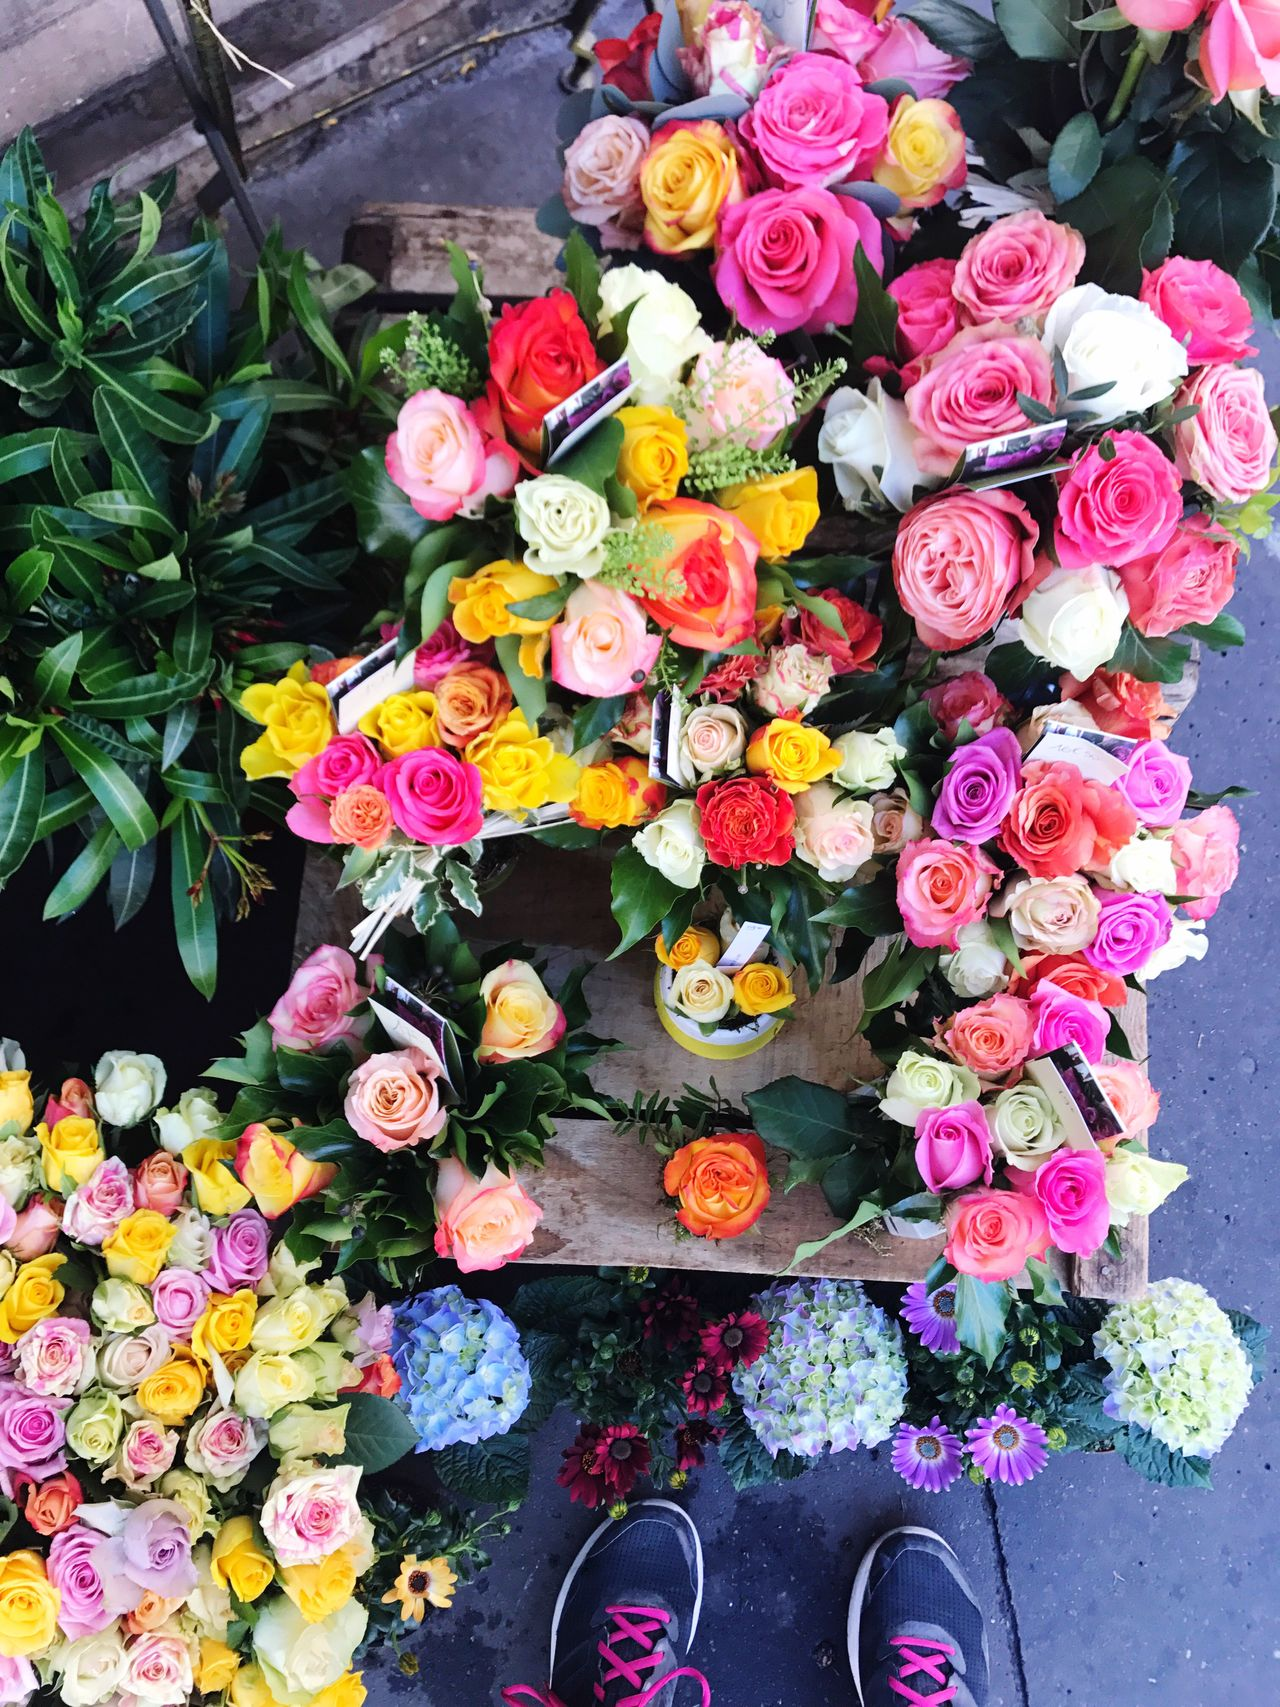 Flower High Angle View Petal Shoe Multi Colored Variation Freshness Human Leg Directly Above Fragility Nature Low Section Flower Head Day Bouquet Choice Beauty In Nature Outdoors Flower Shop Plant Out Of The Box